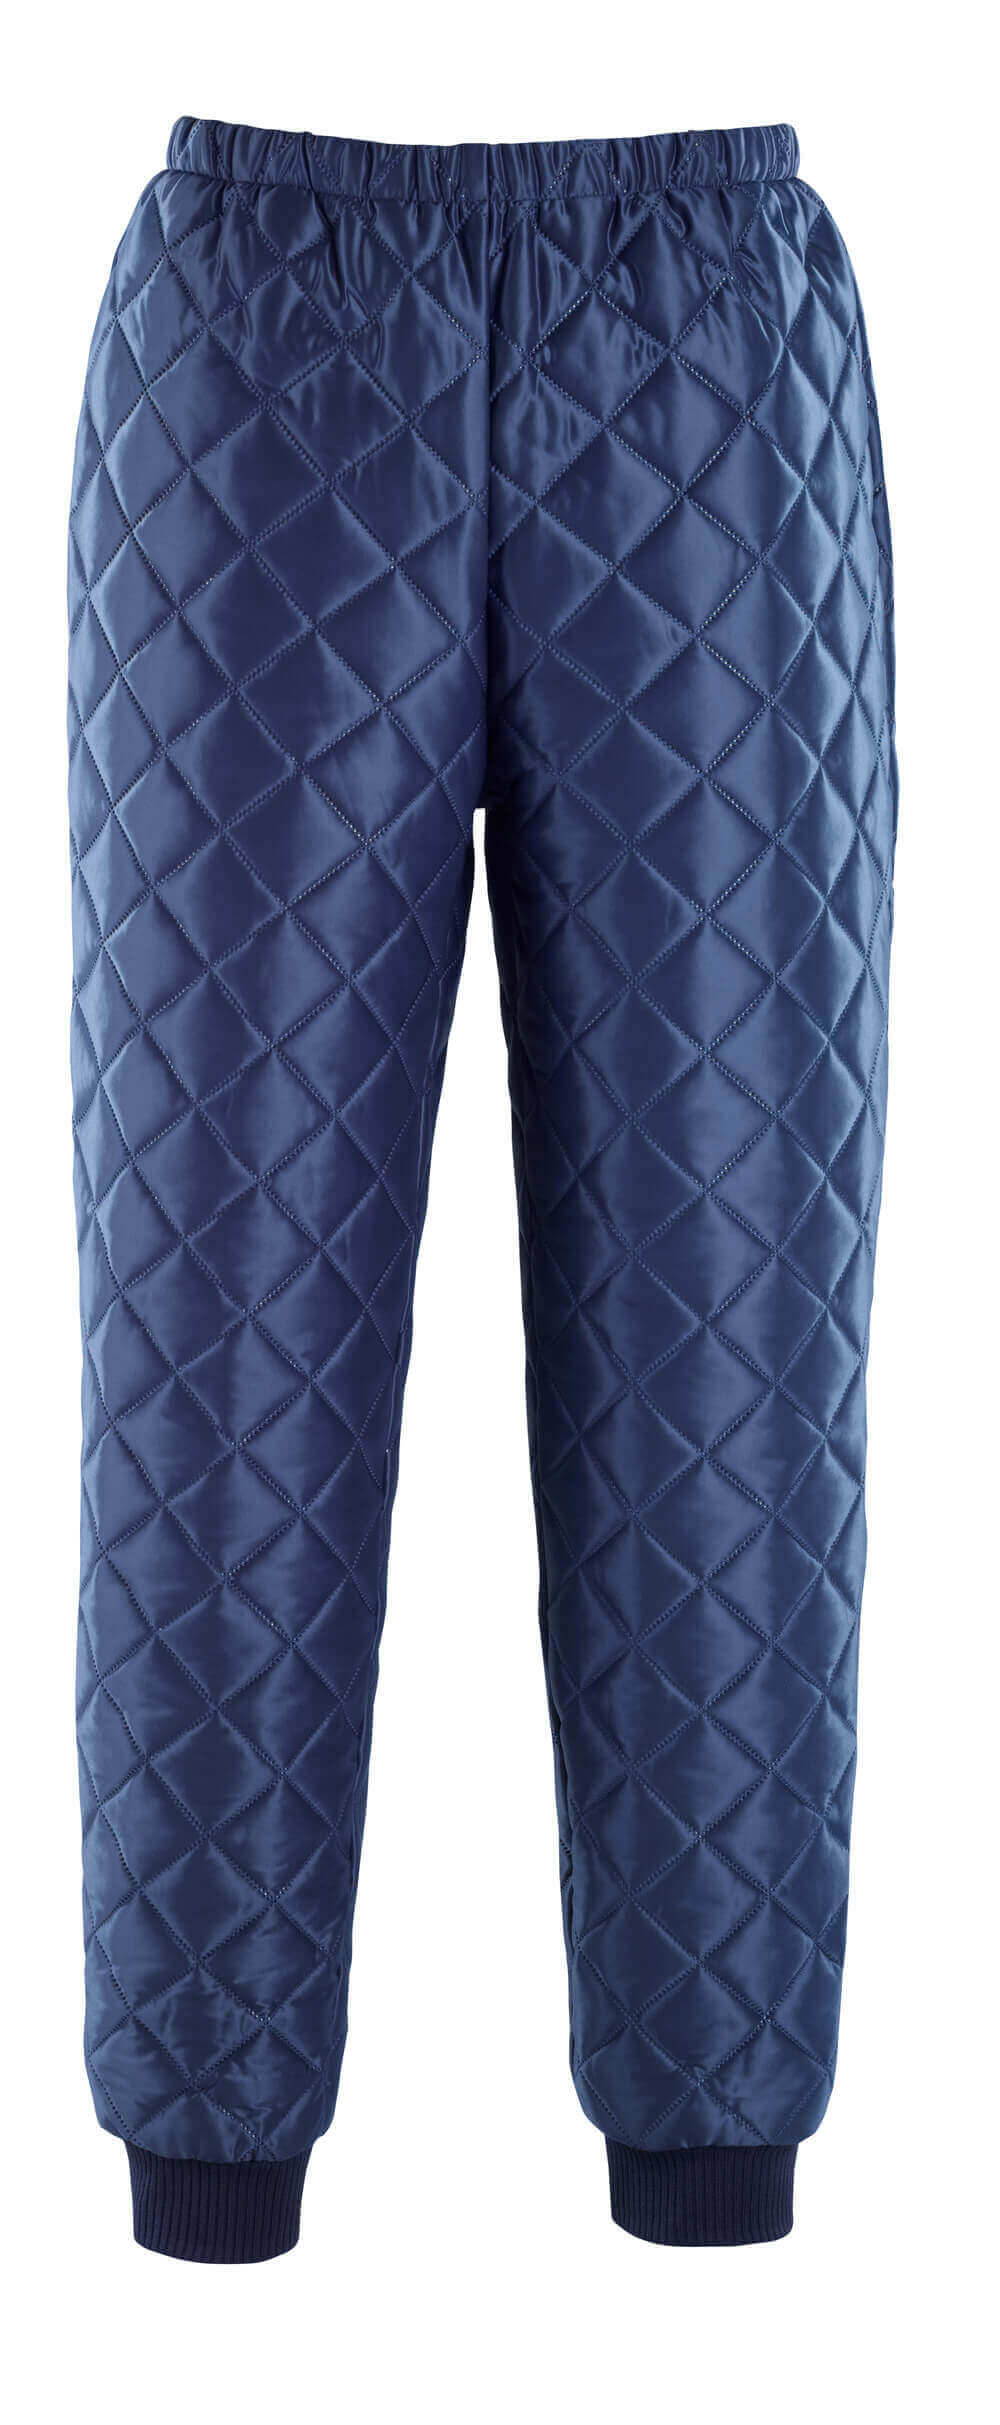 13571-707-01 Thermal Trousers - navy